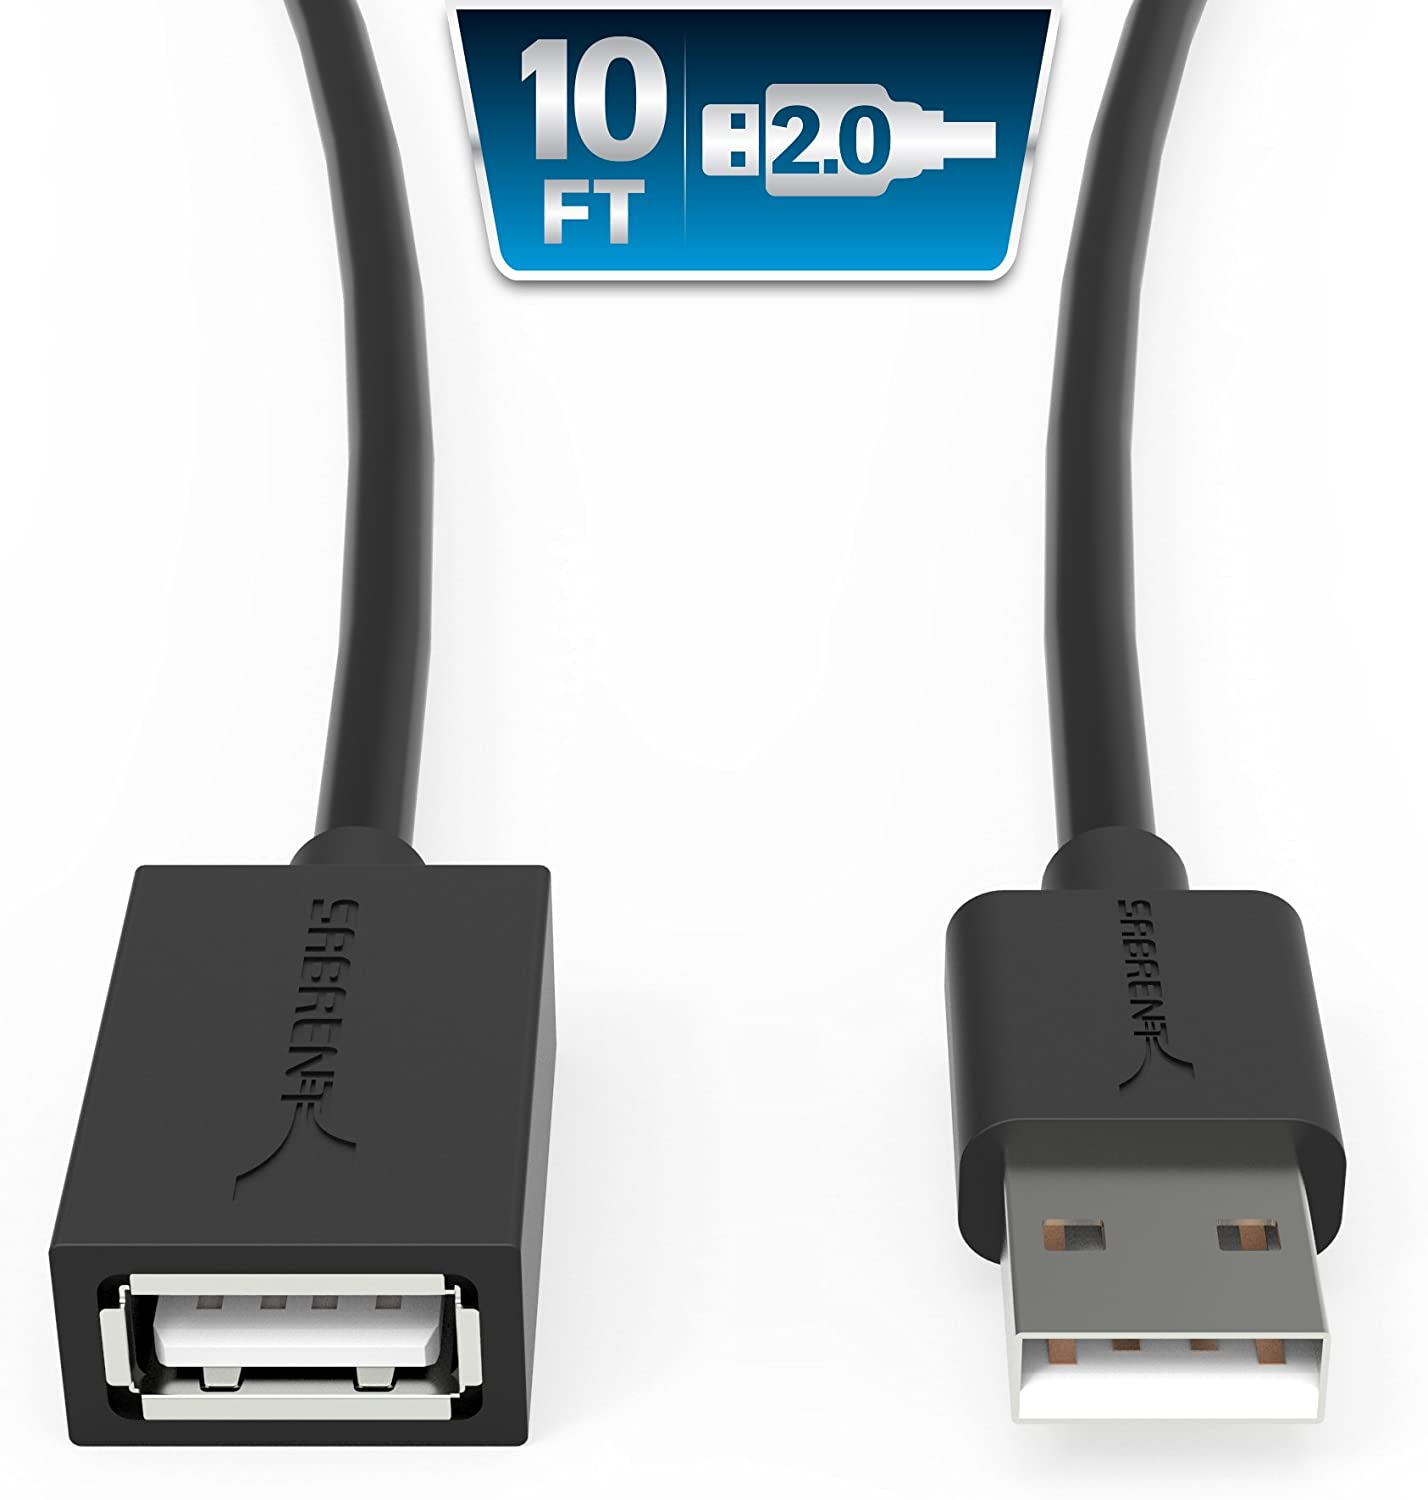 Sabrent 22AWG USB 2.0 Extension Cable - A-Male to A-Female [Black] 10 Feet (CB-2010)